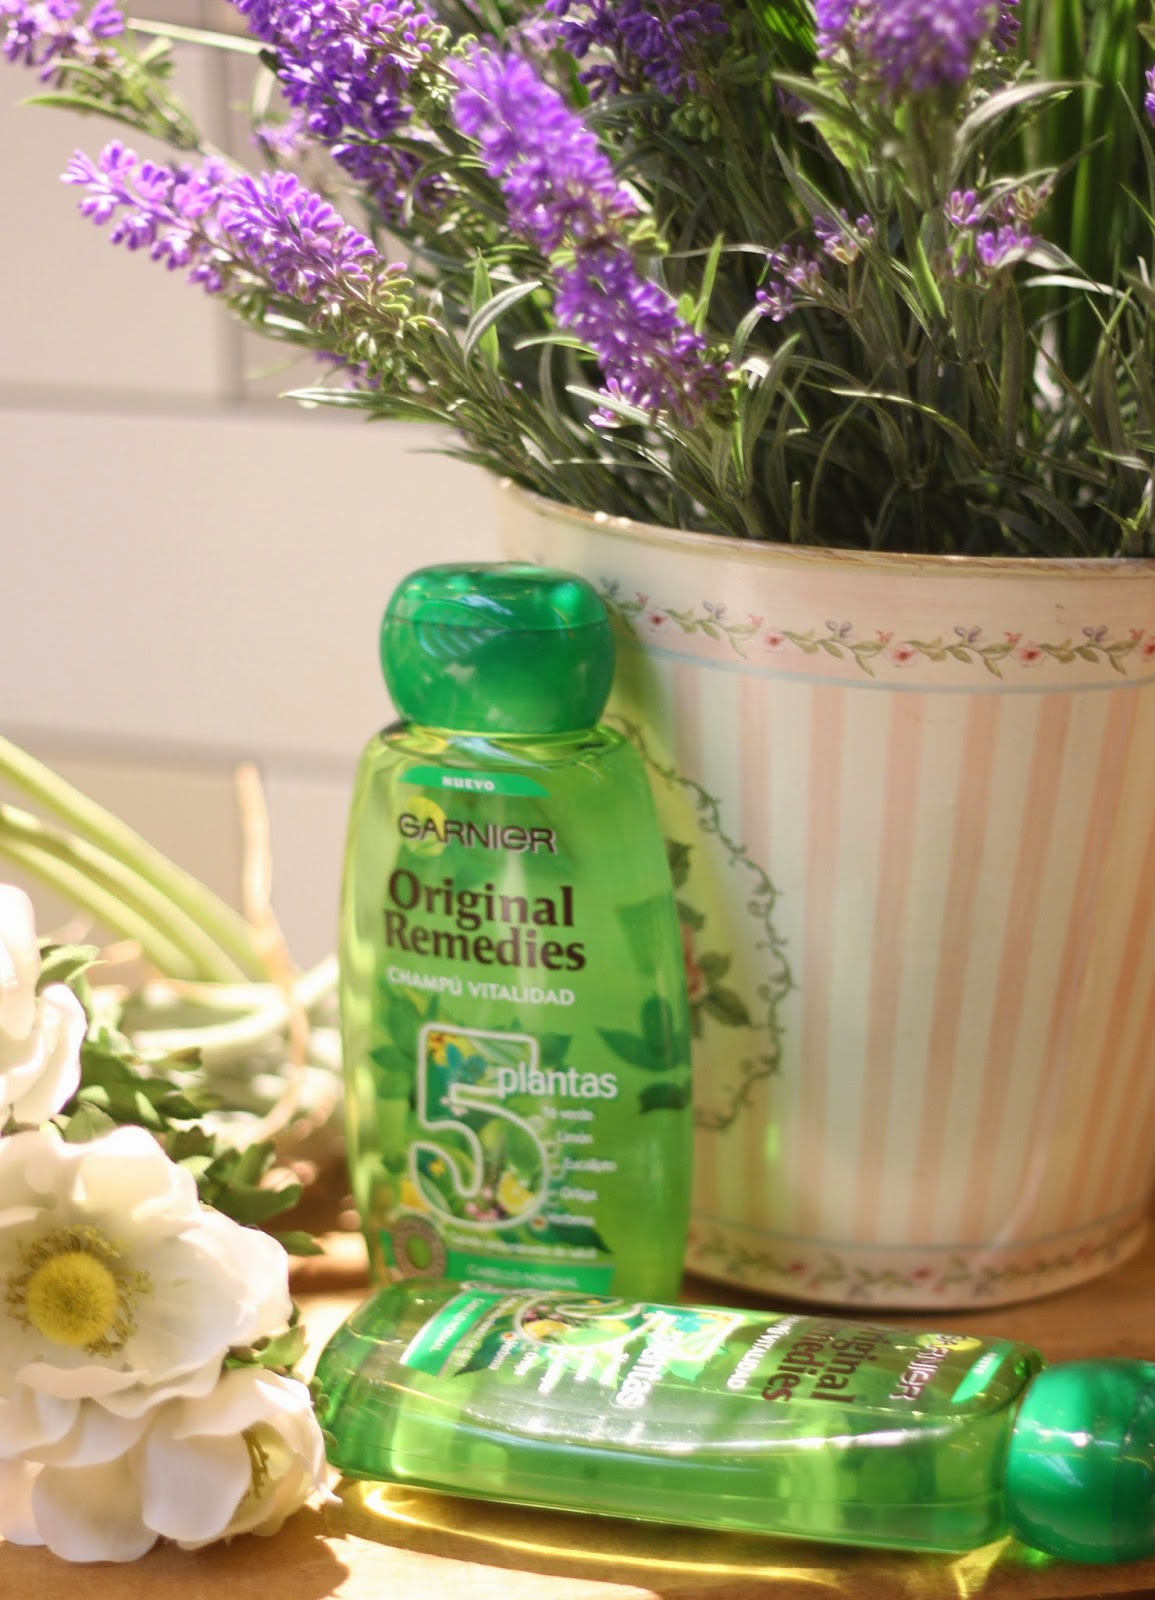 photo-garnier-original_remedies-5_plantas